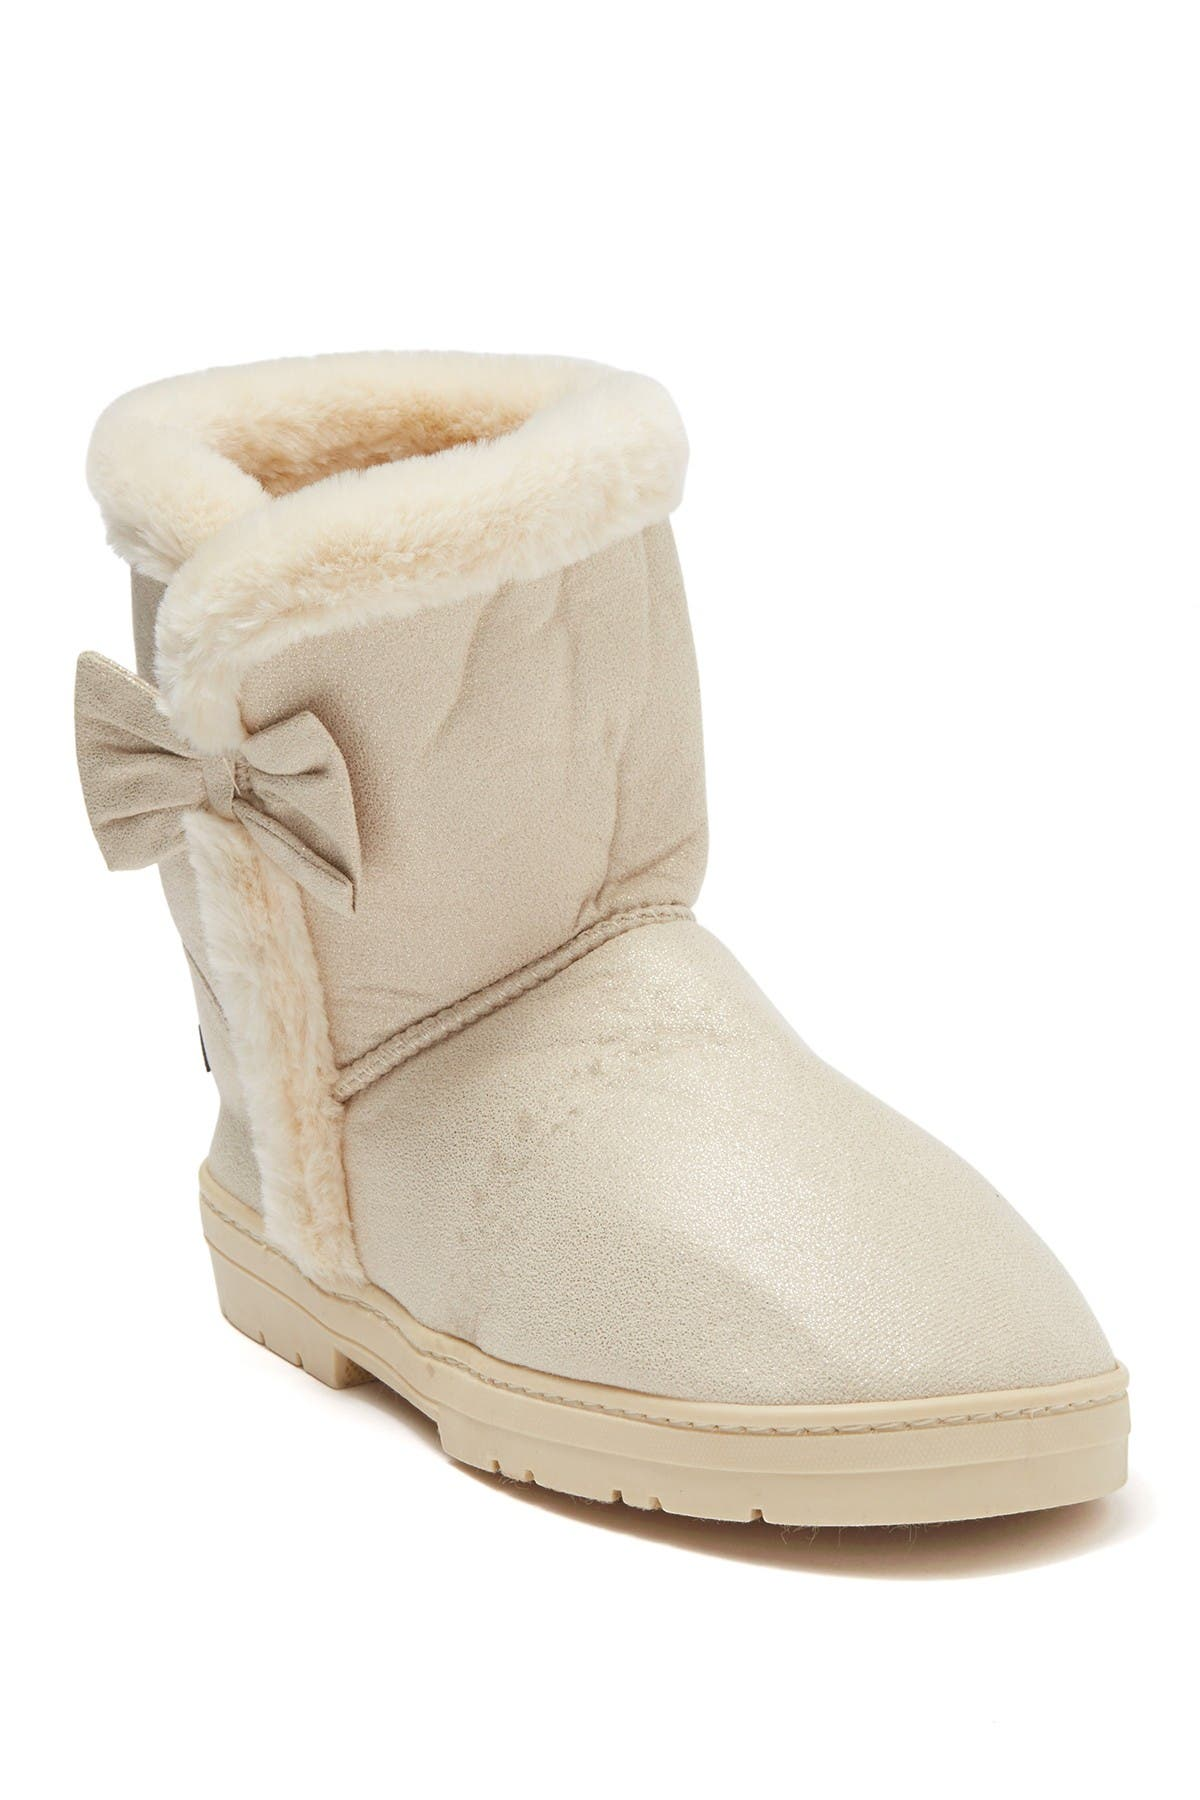 Image of bebe Faux Fur Lined Shimmer Microsuede Boot